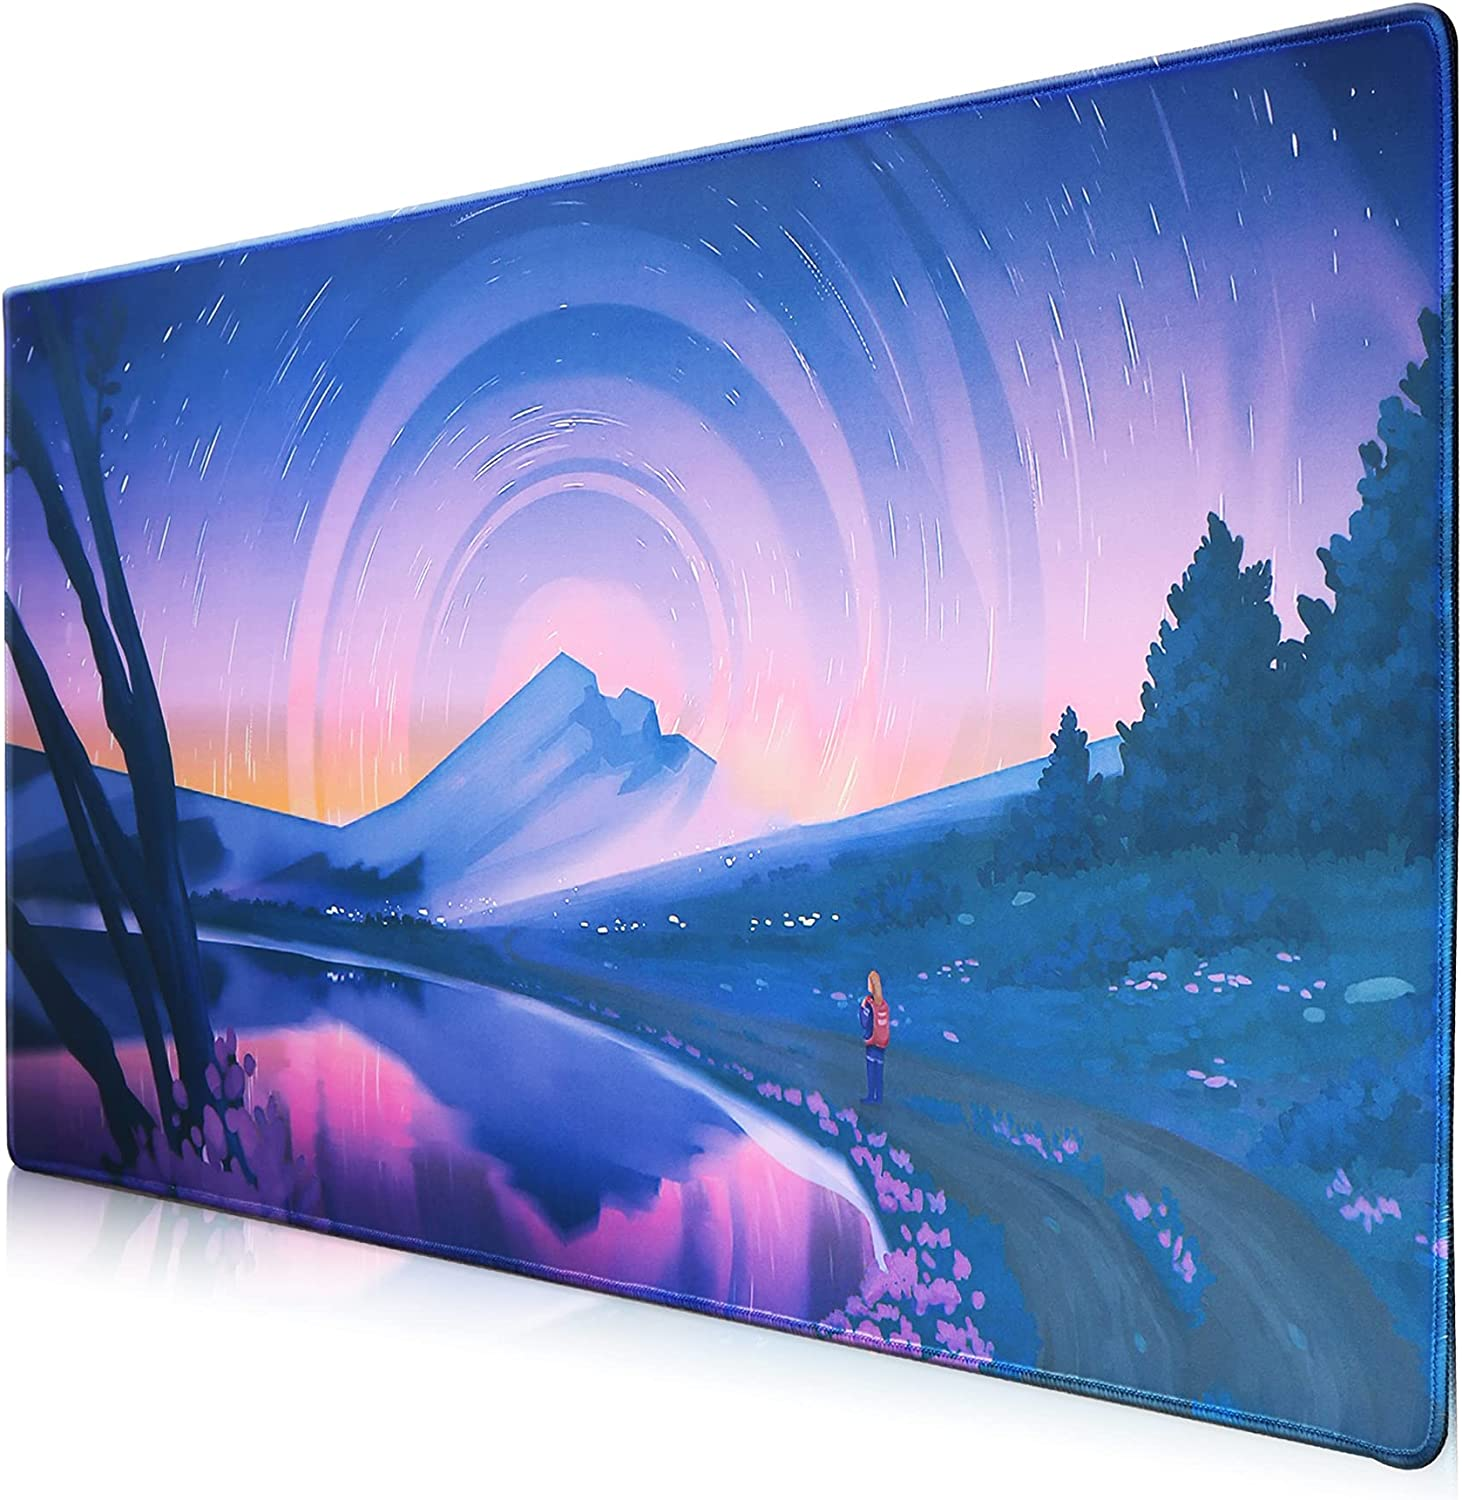 Beoesa Extended Mouse Pad Bombing new work with Comfor Base Soft Rubber Industry No. 1 Non-Slip